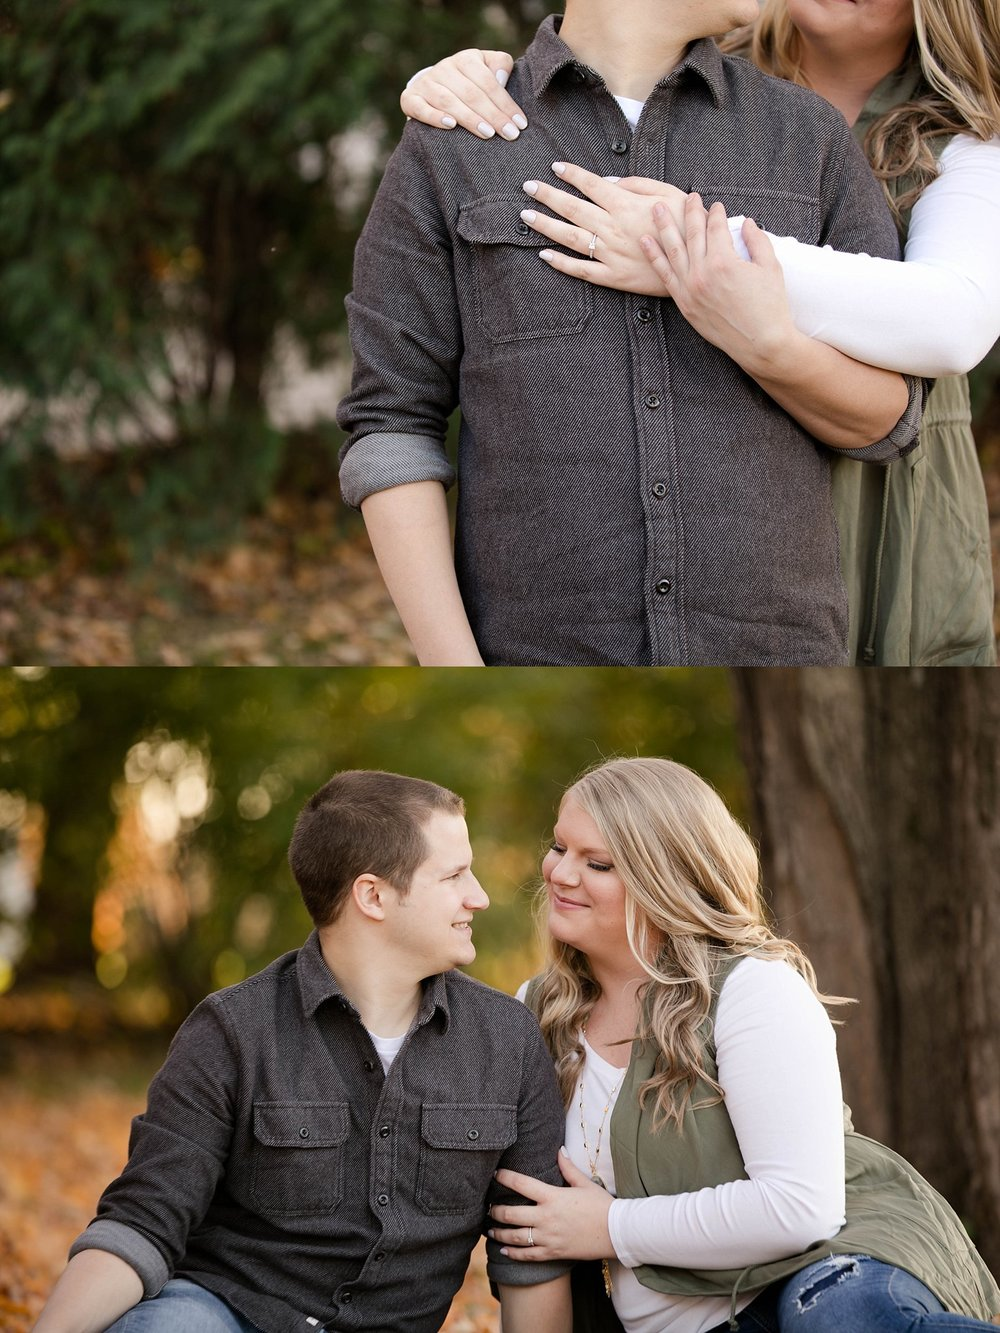 5Alice Hq Photography | Jordain + Kody | Southern MN Engagement.jpg